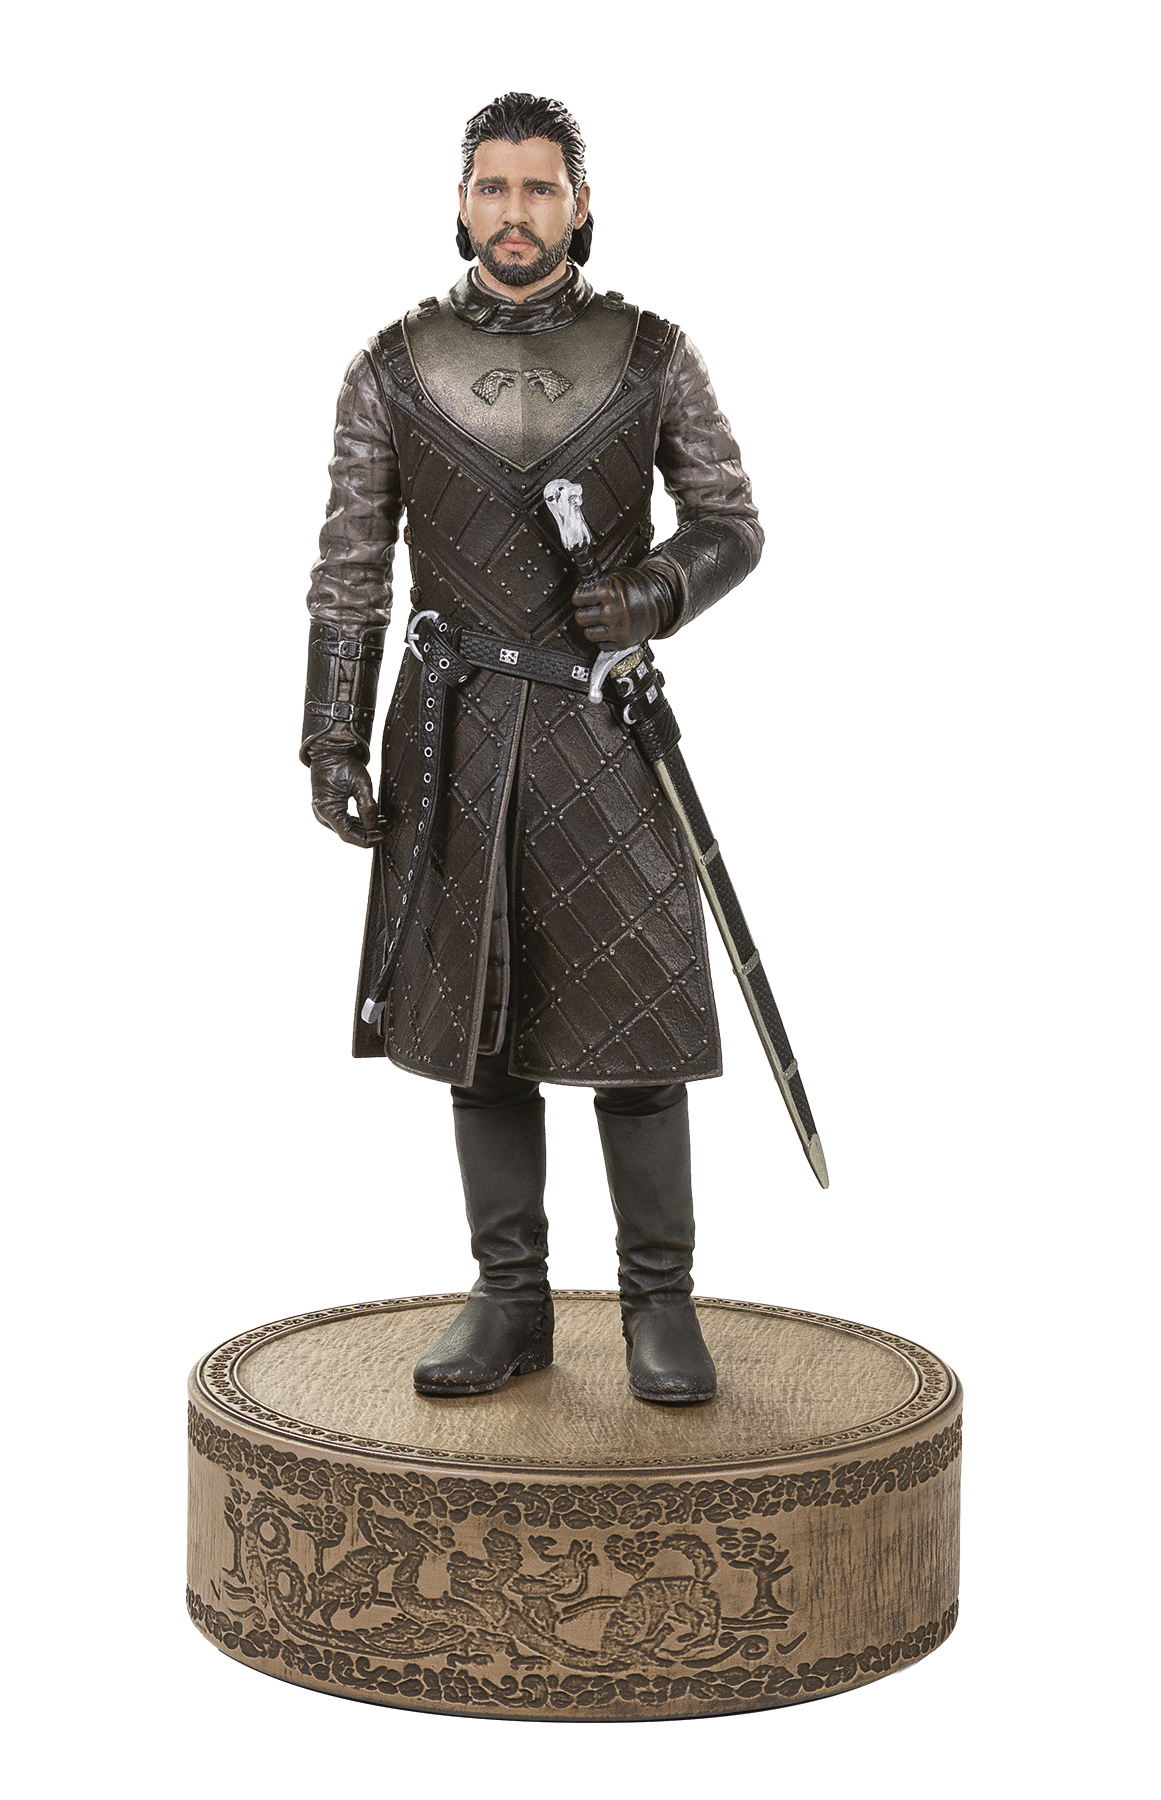 GOT JON SNOW PREMIUM FIGURE